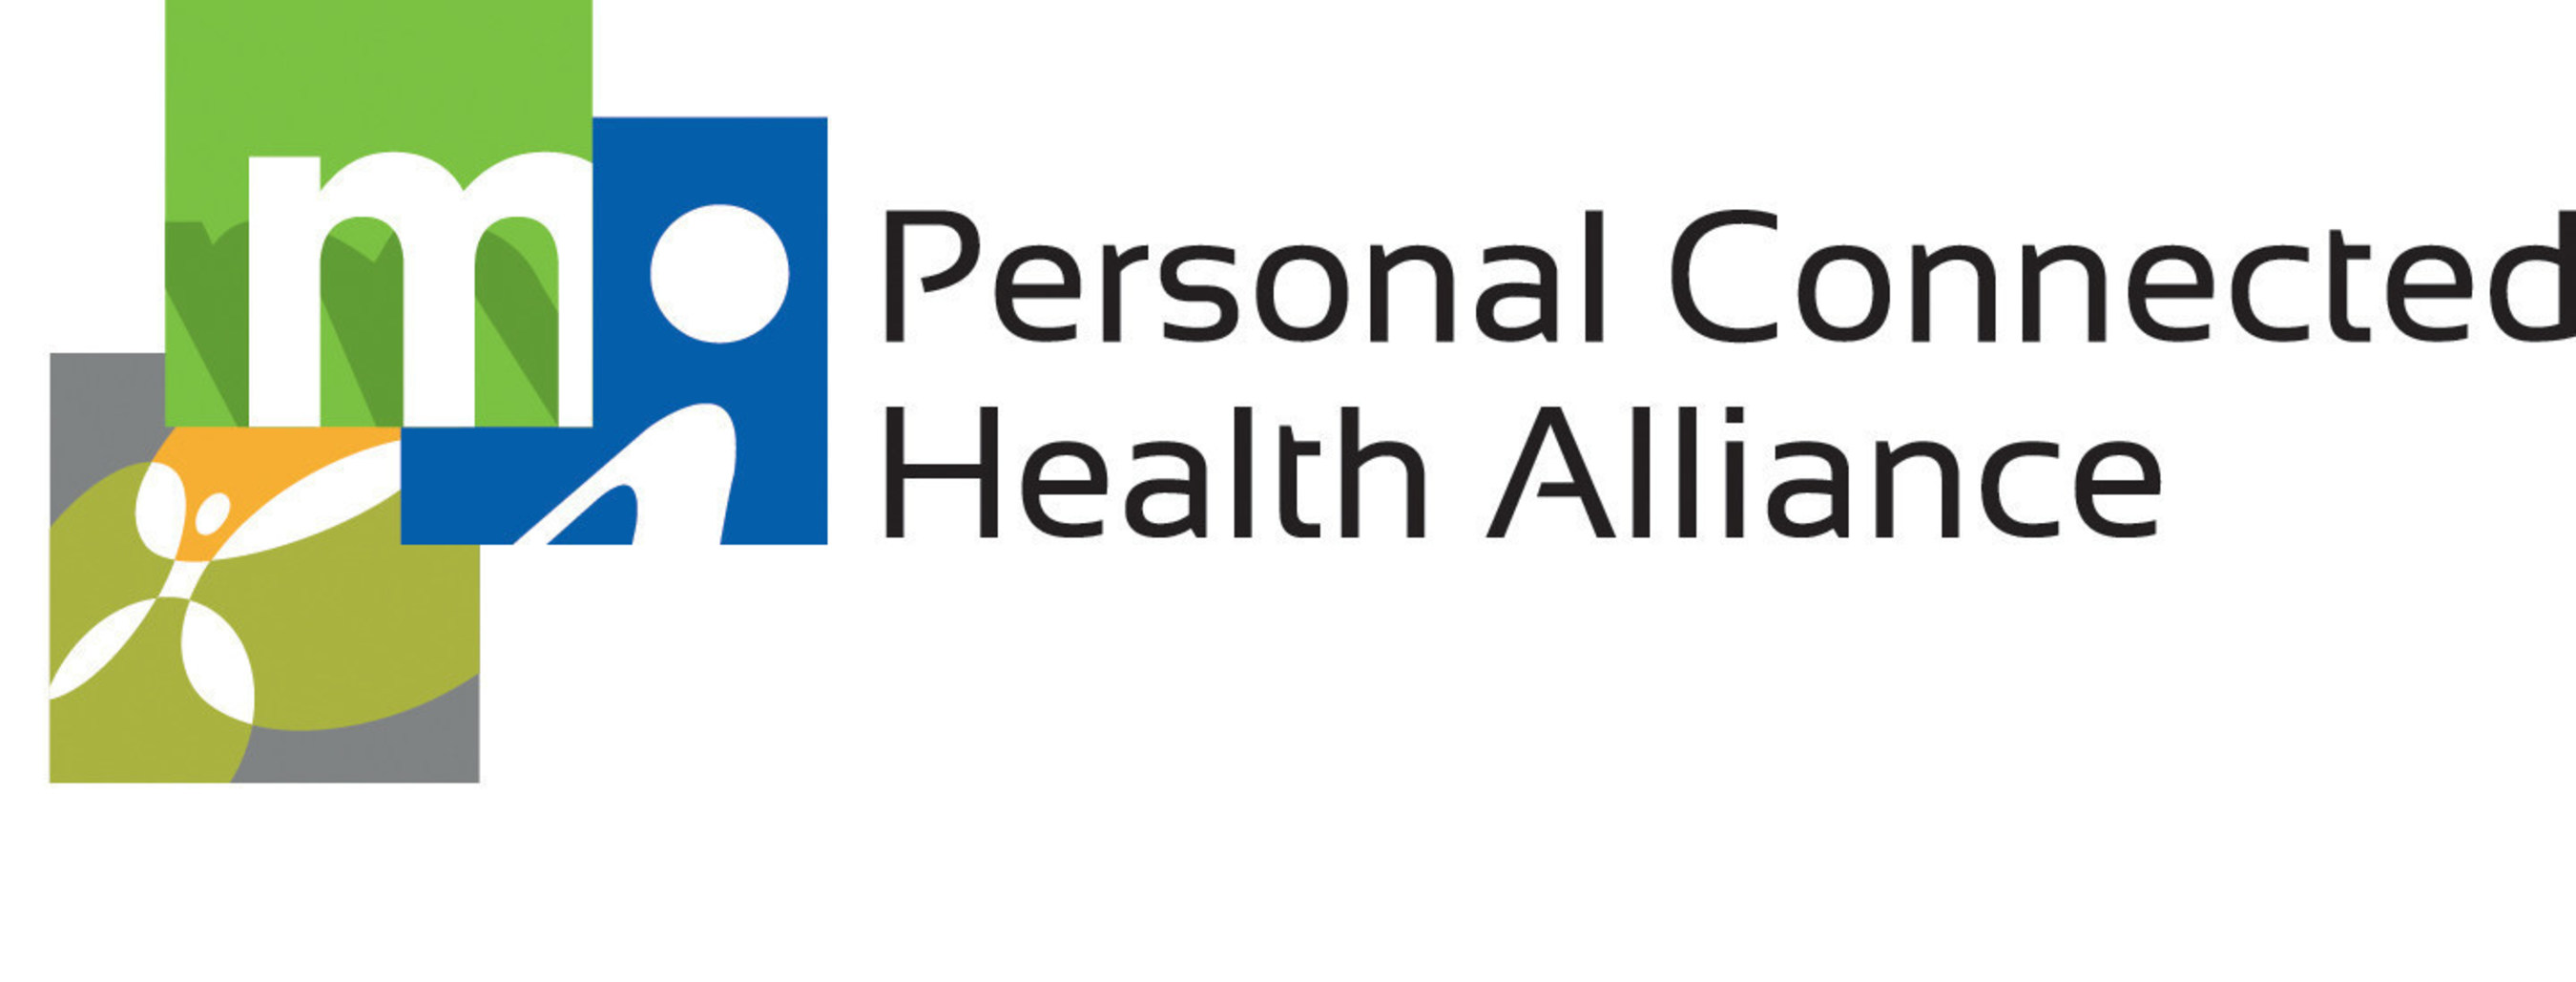 Personal Connected Health Alliance (PCHA) logo